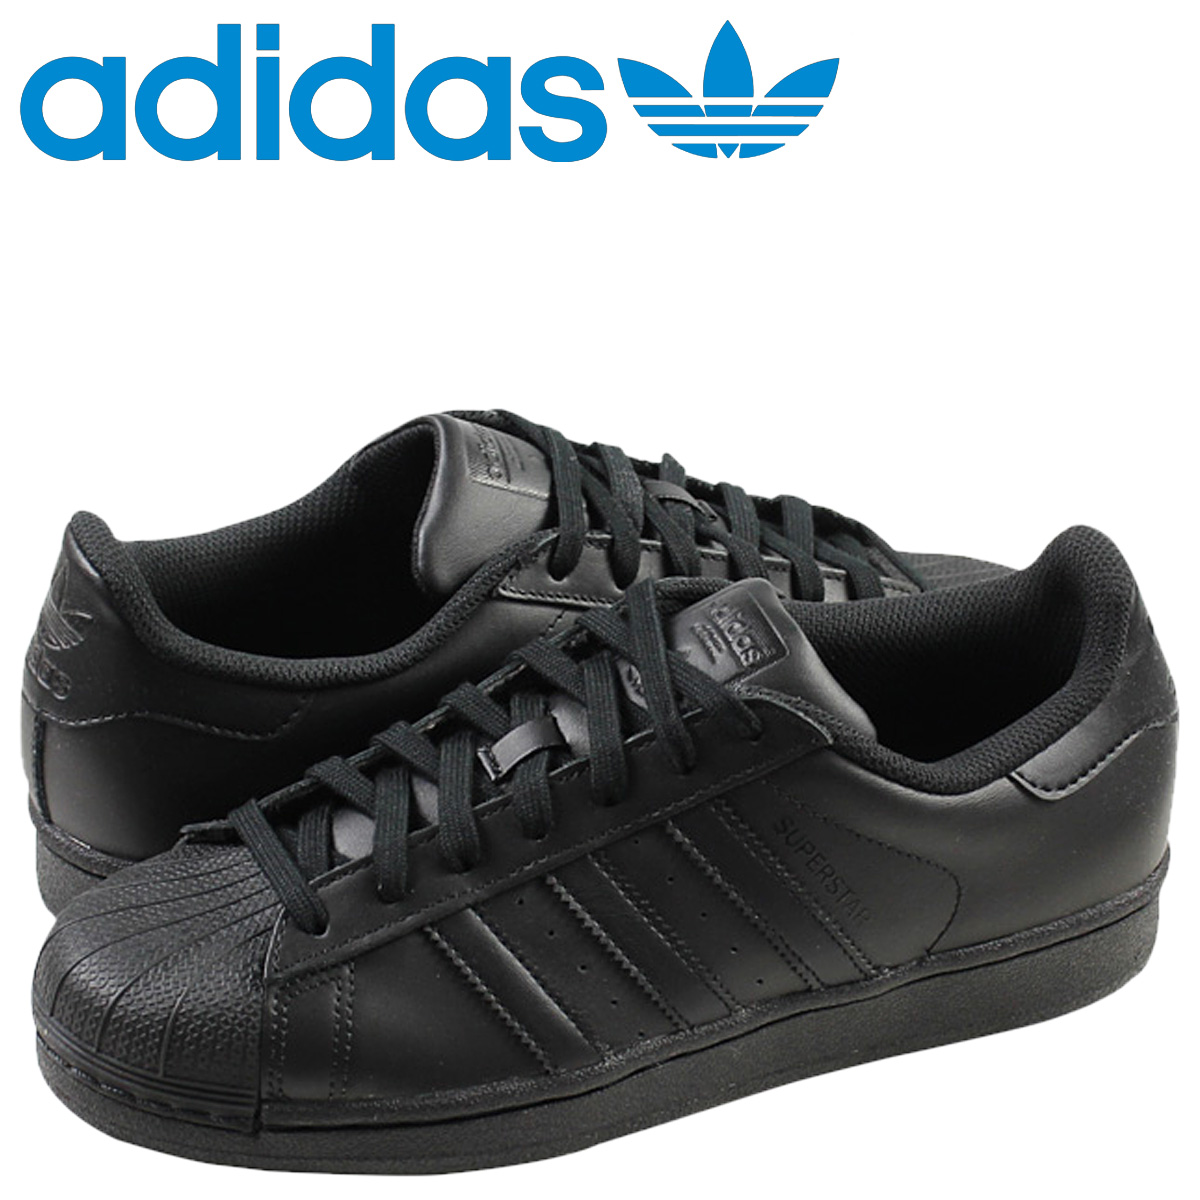 [Adidas] AF5666 Originals Superstar Foundation Men Women Shoes Sneakers Black